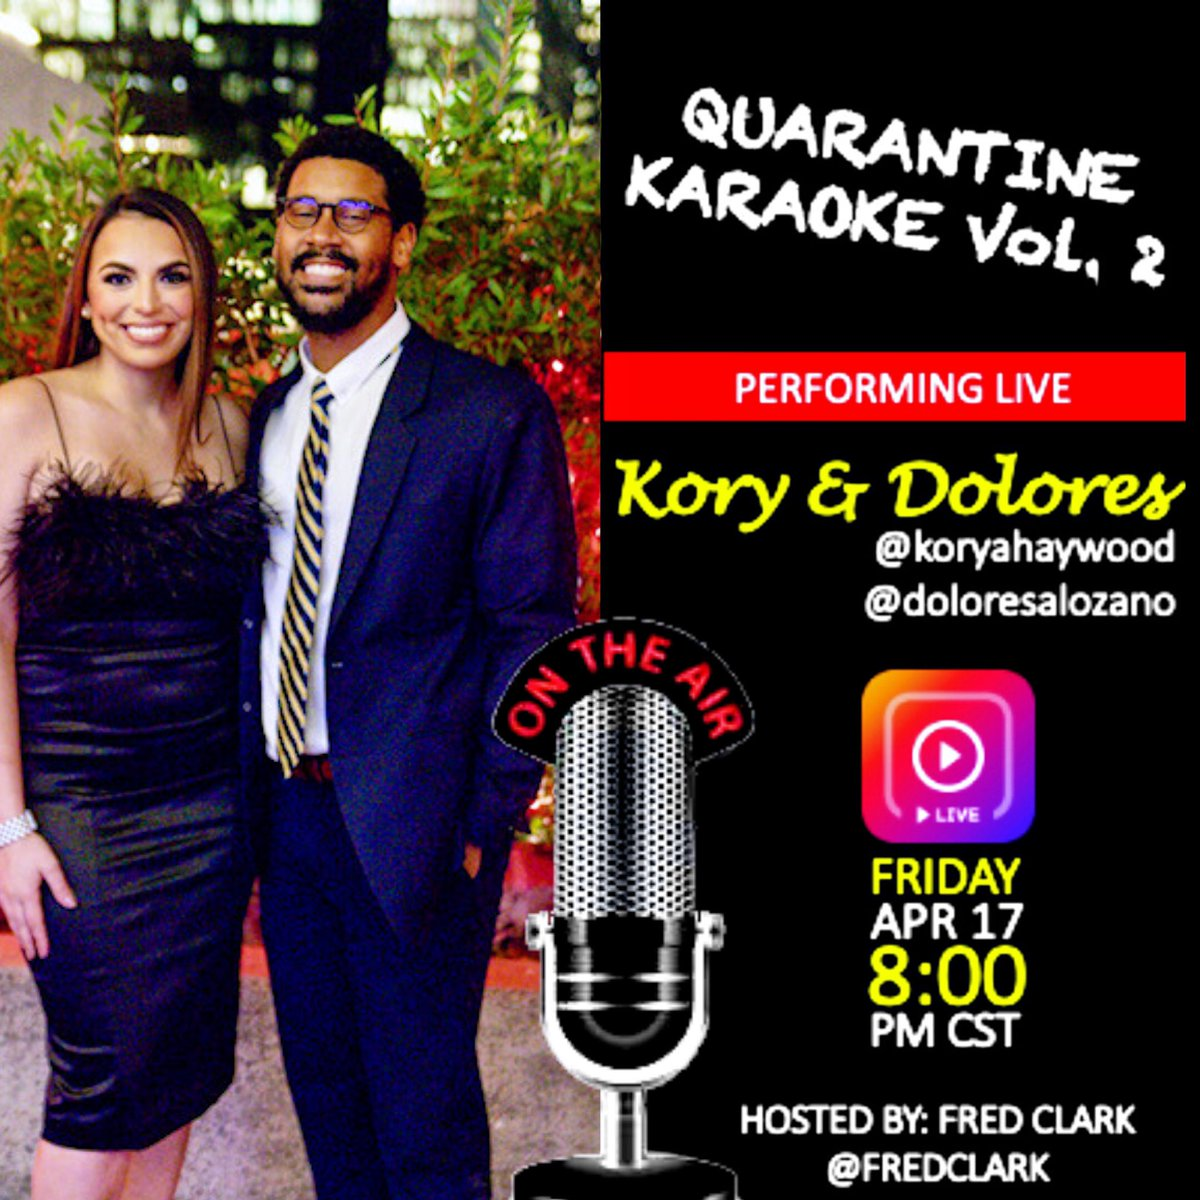 Tune into #QUARANTINEKARAOKE VOL. 2 hosted by @fredclark tonight on his IG LIVE at 8pm CT/9pm ET! Before we grab the mic... what's your go-to karaoke song? #QuarantineLife #FridayVibes #StayHome #StayHealthy #COVID19pic.twitter.com/HqPnAaNowg